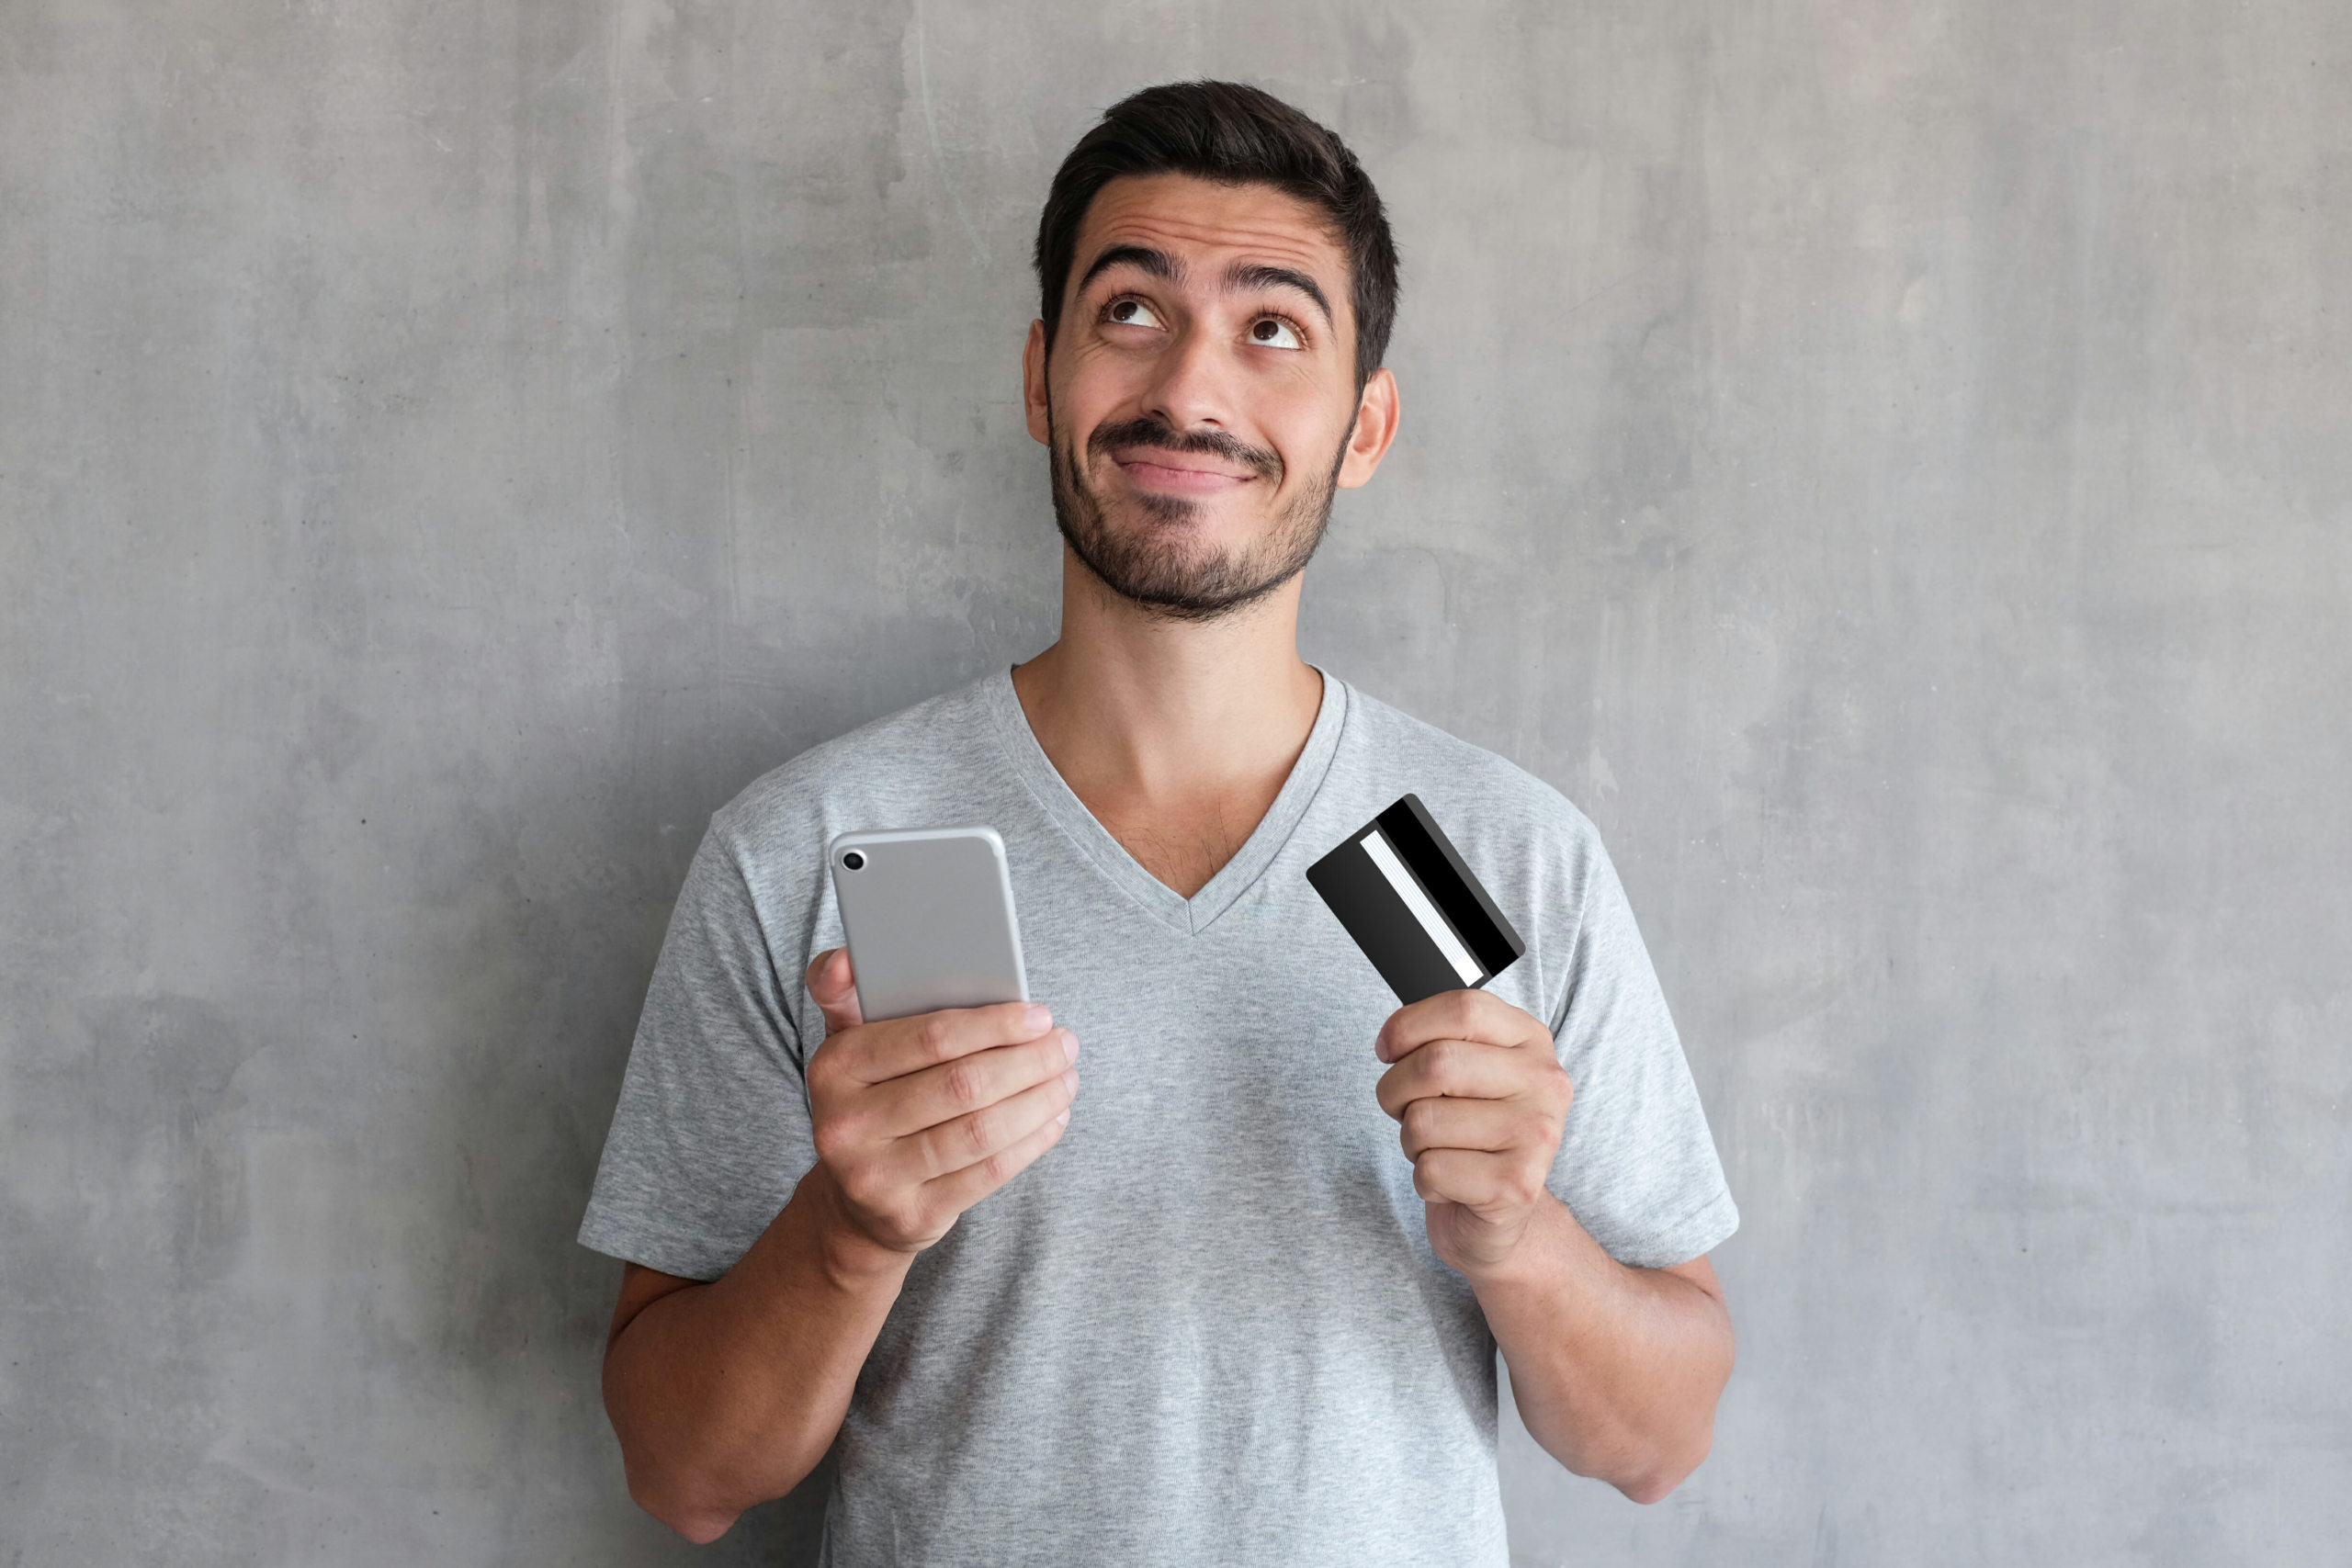 Young man thinking about online shopping via internet, wearing gray t shirt, standing against textured wall, holding credit card and cell phone